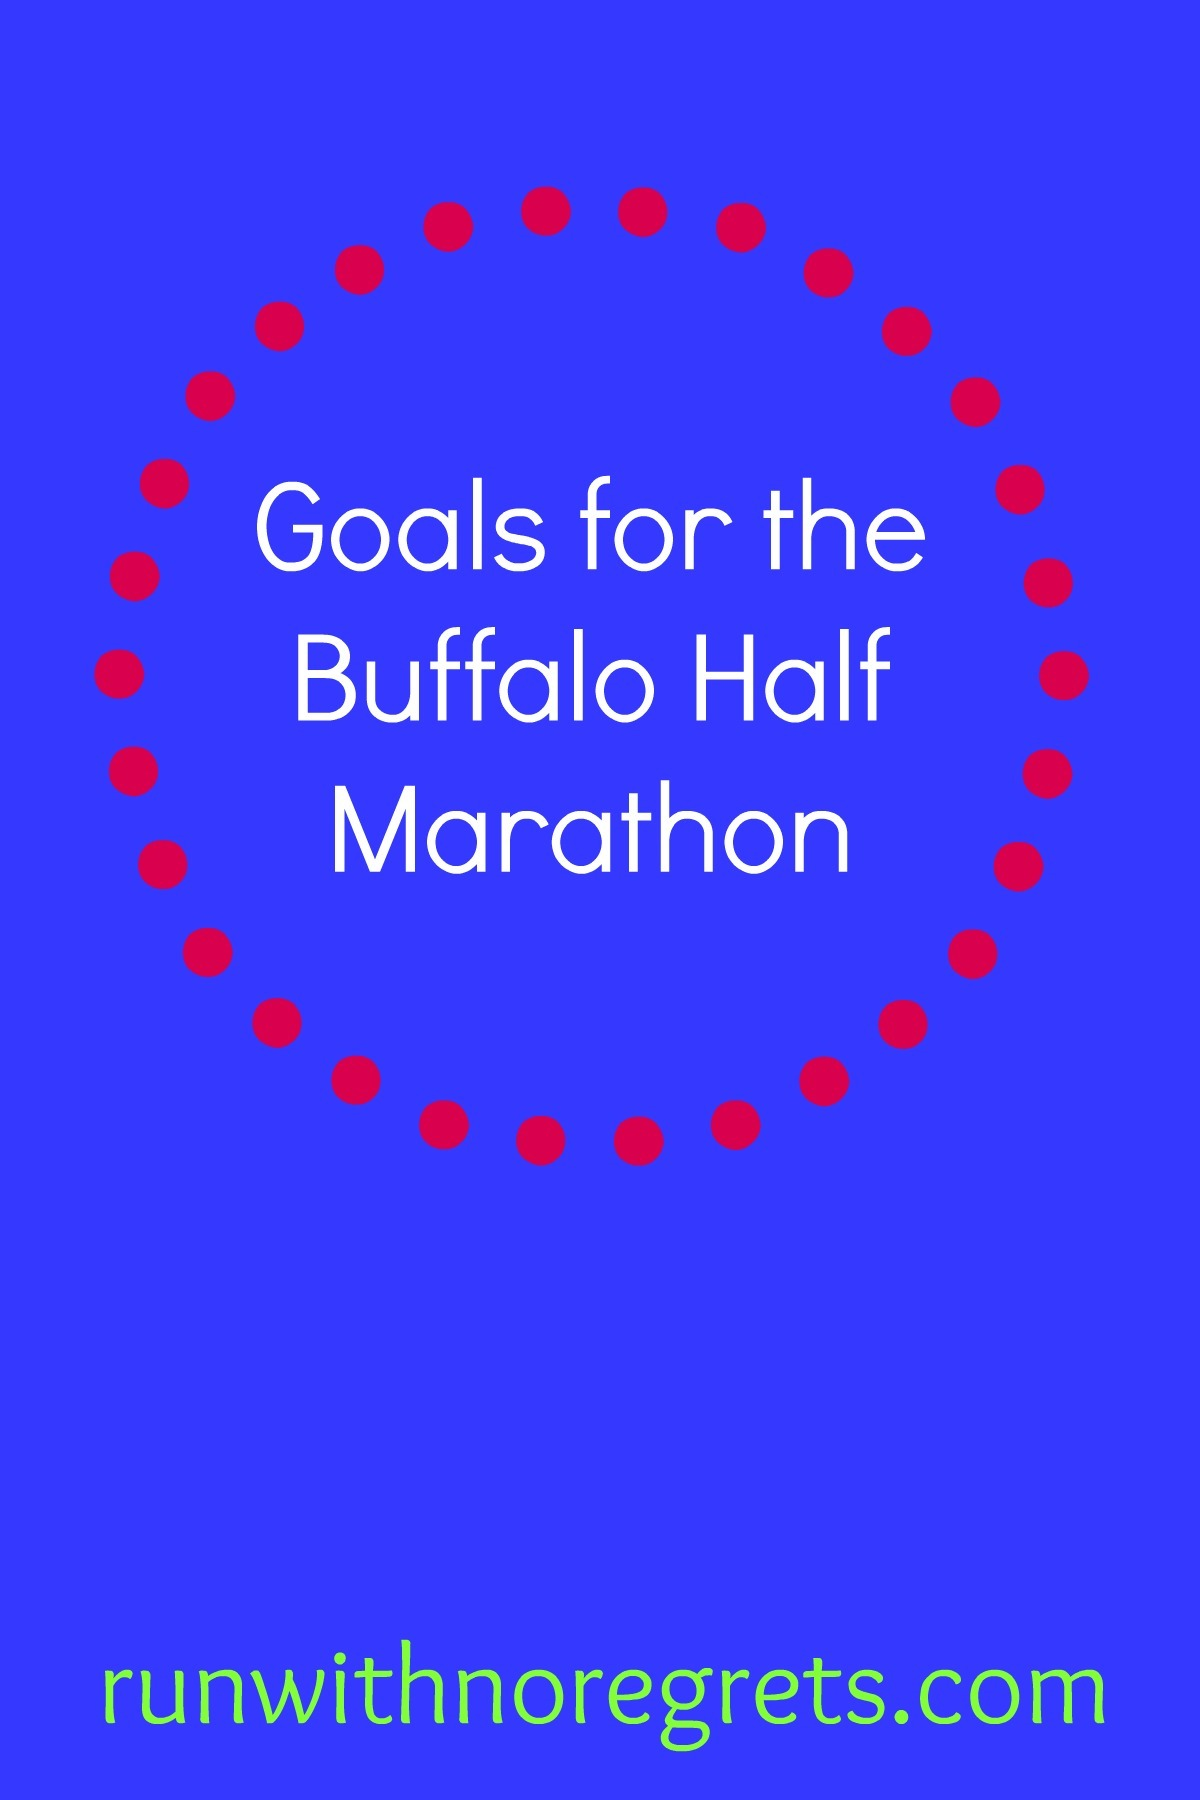 I'm so excited to be running the Buffalo Half Marathon for the first time! Check out my goals for the race!